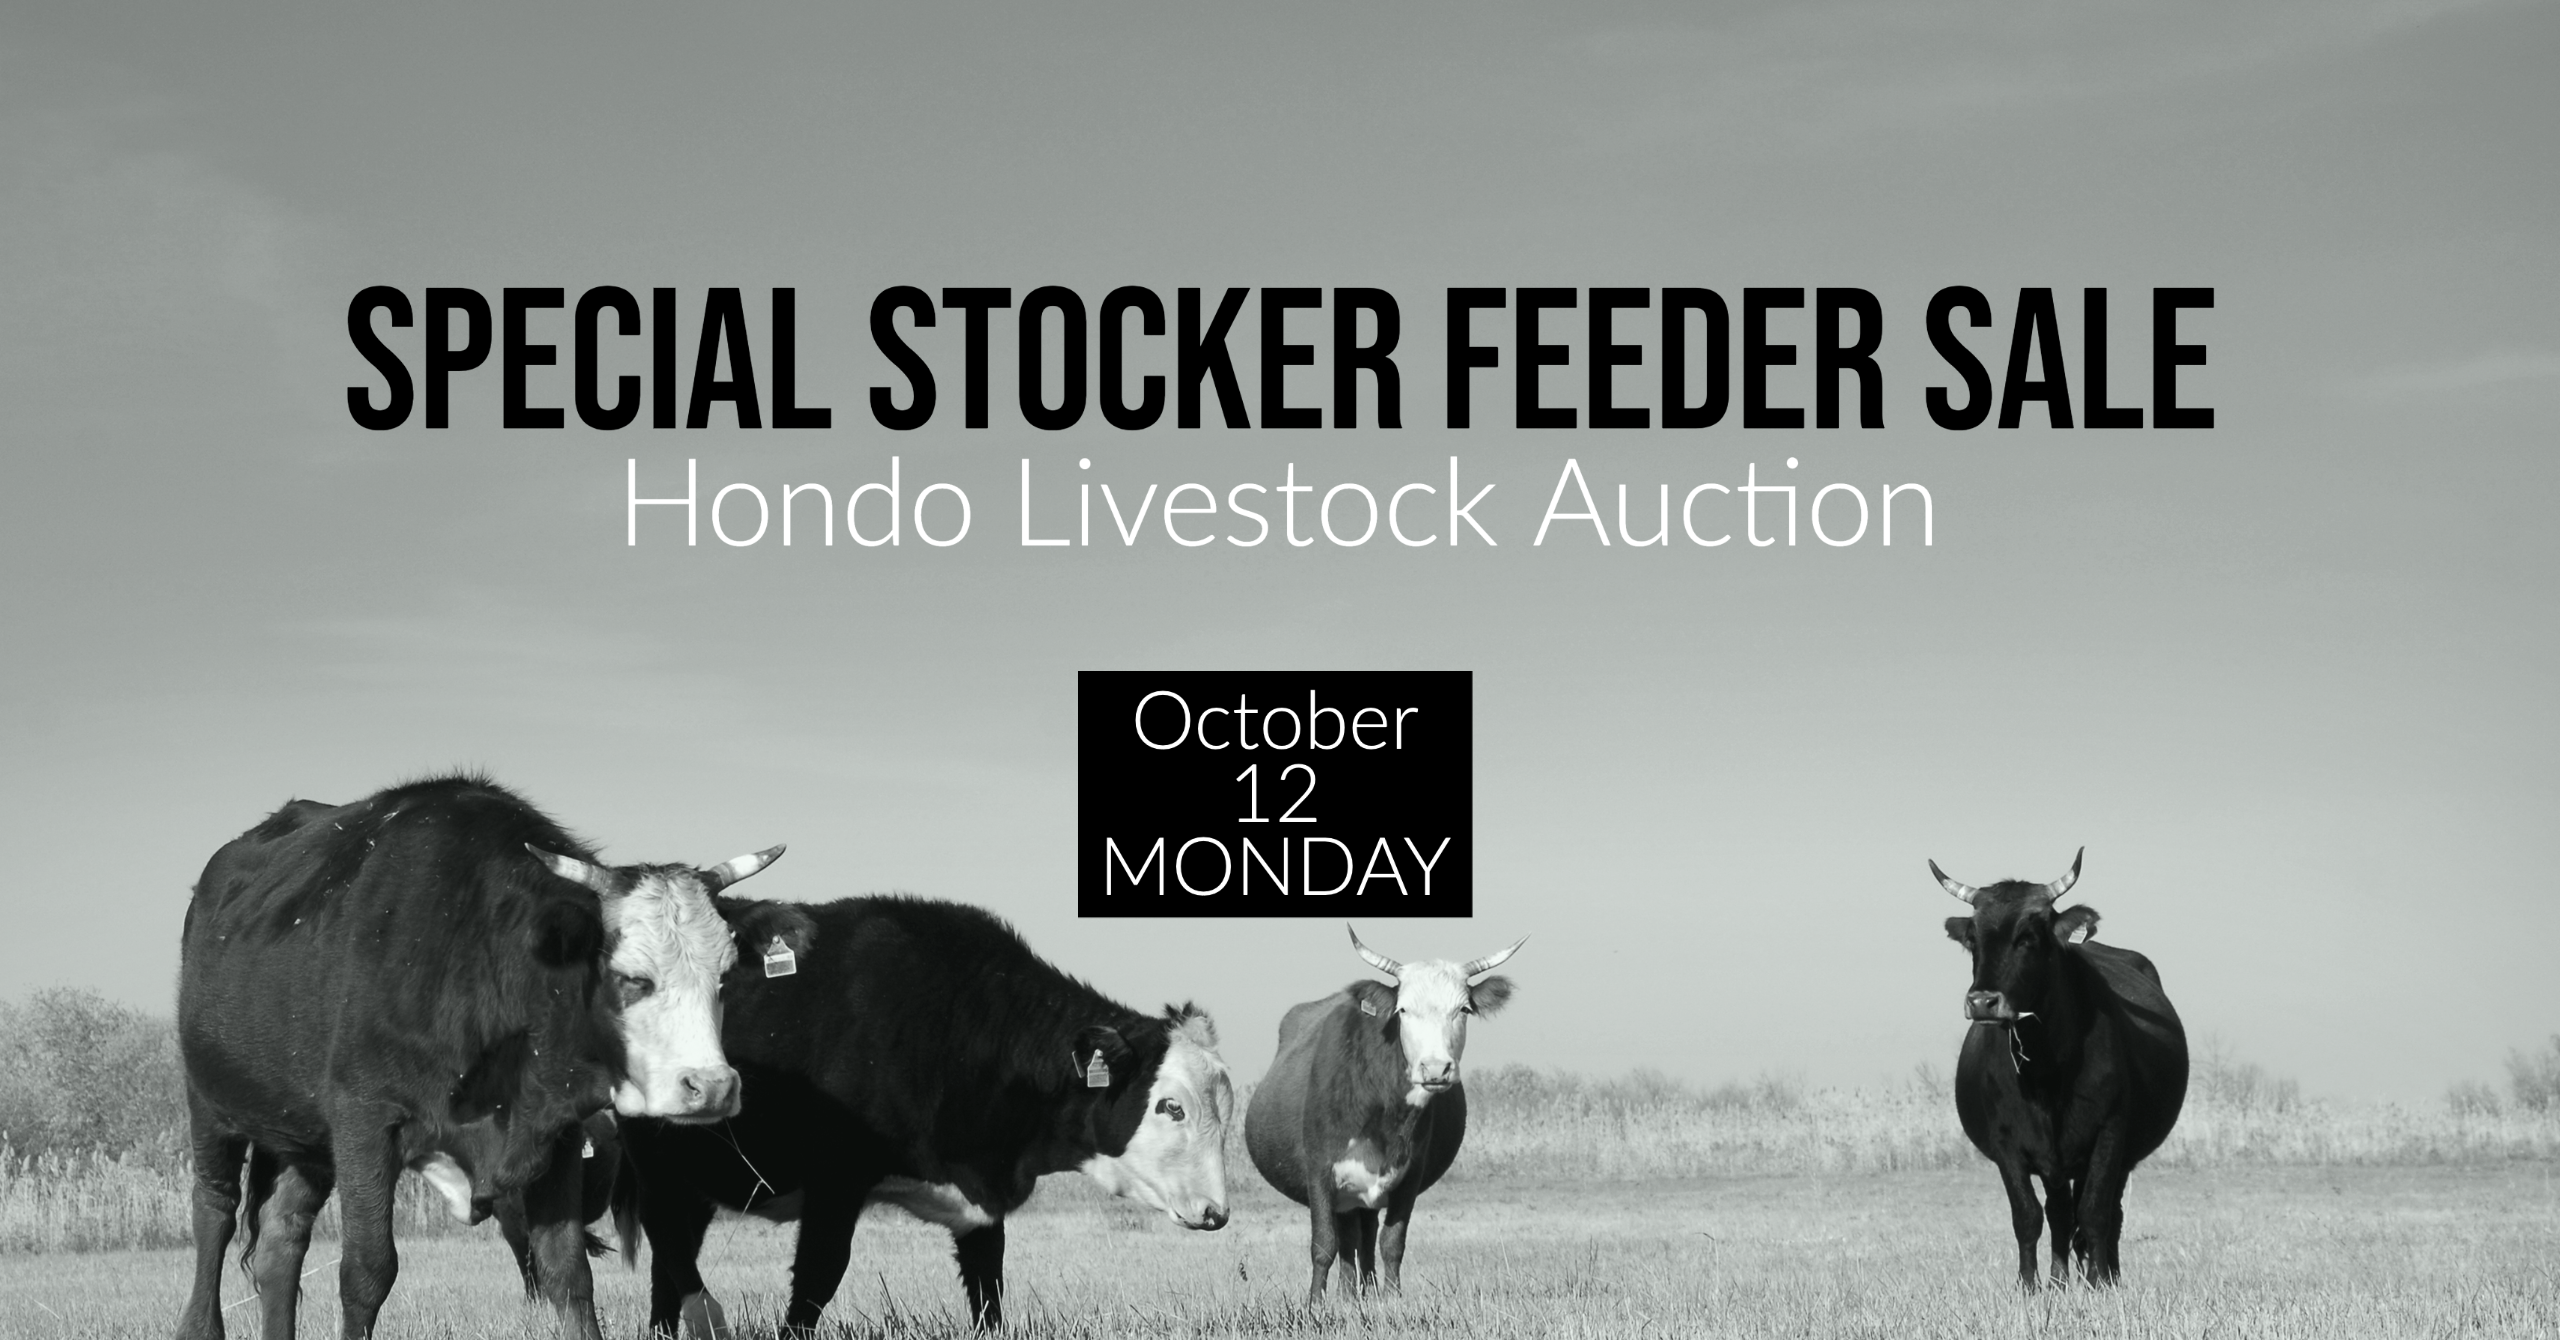 Special Livestock Sale at Hondo Livestock Auction